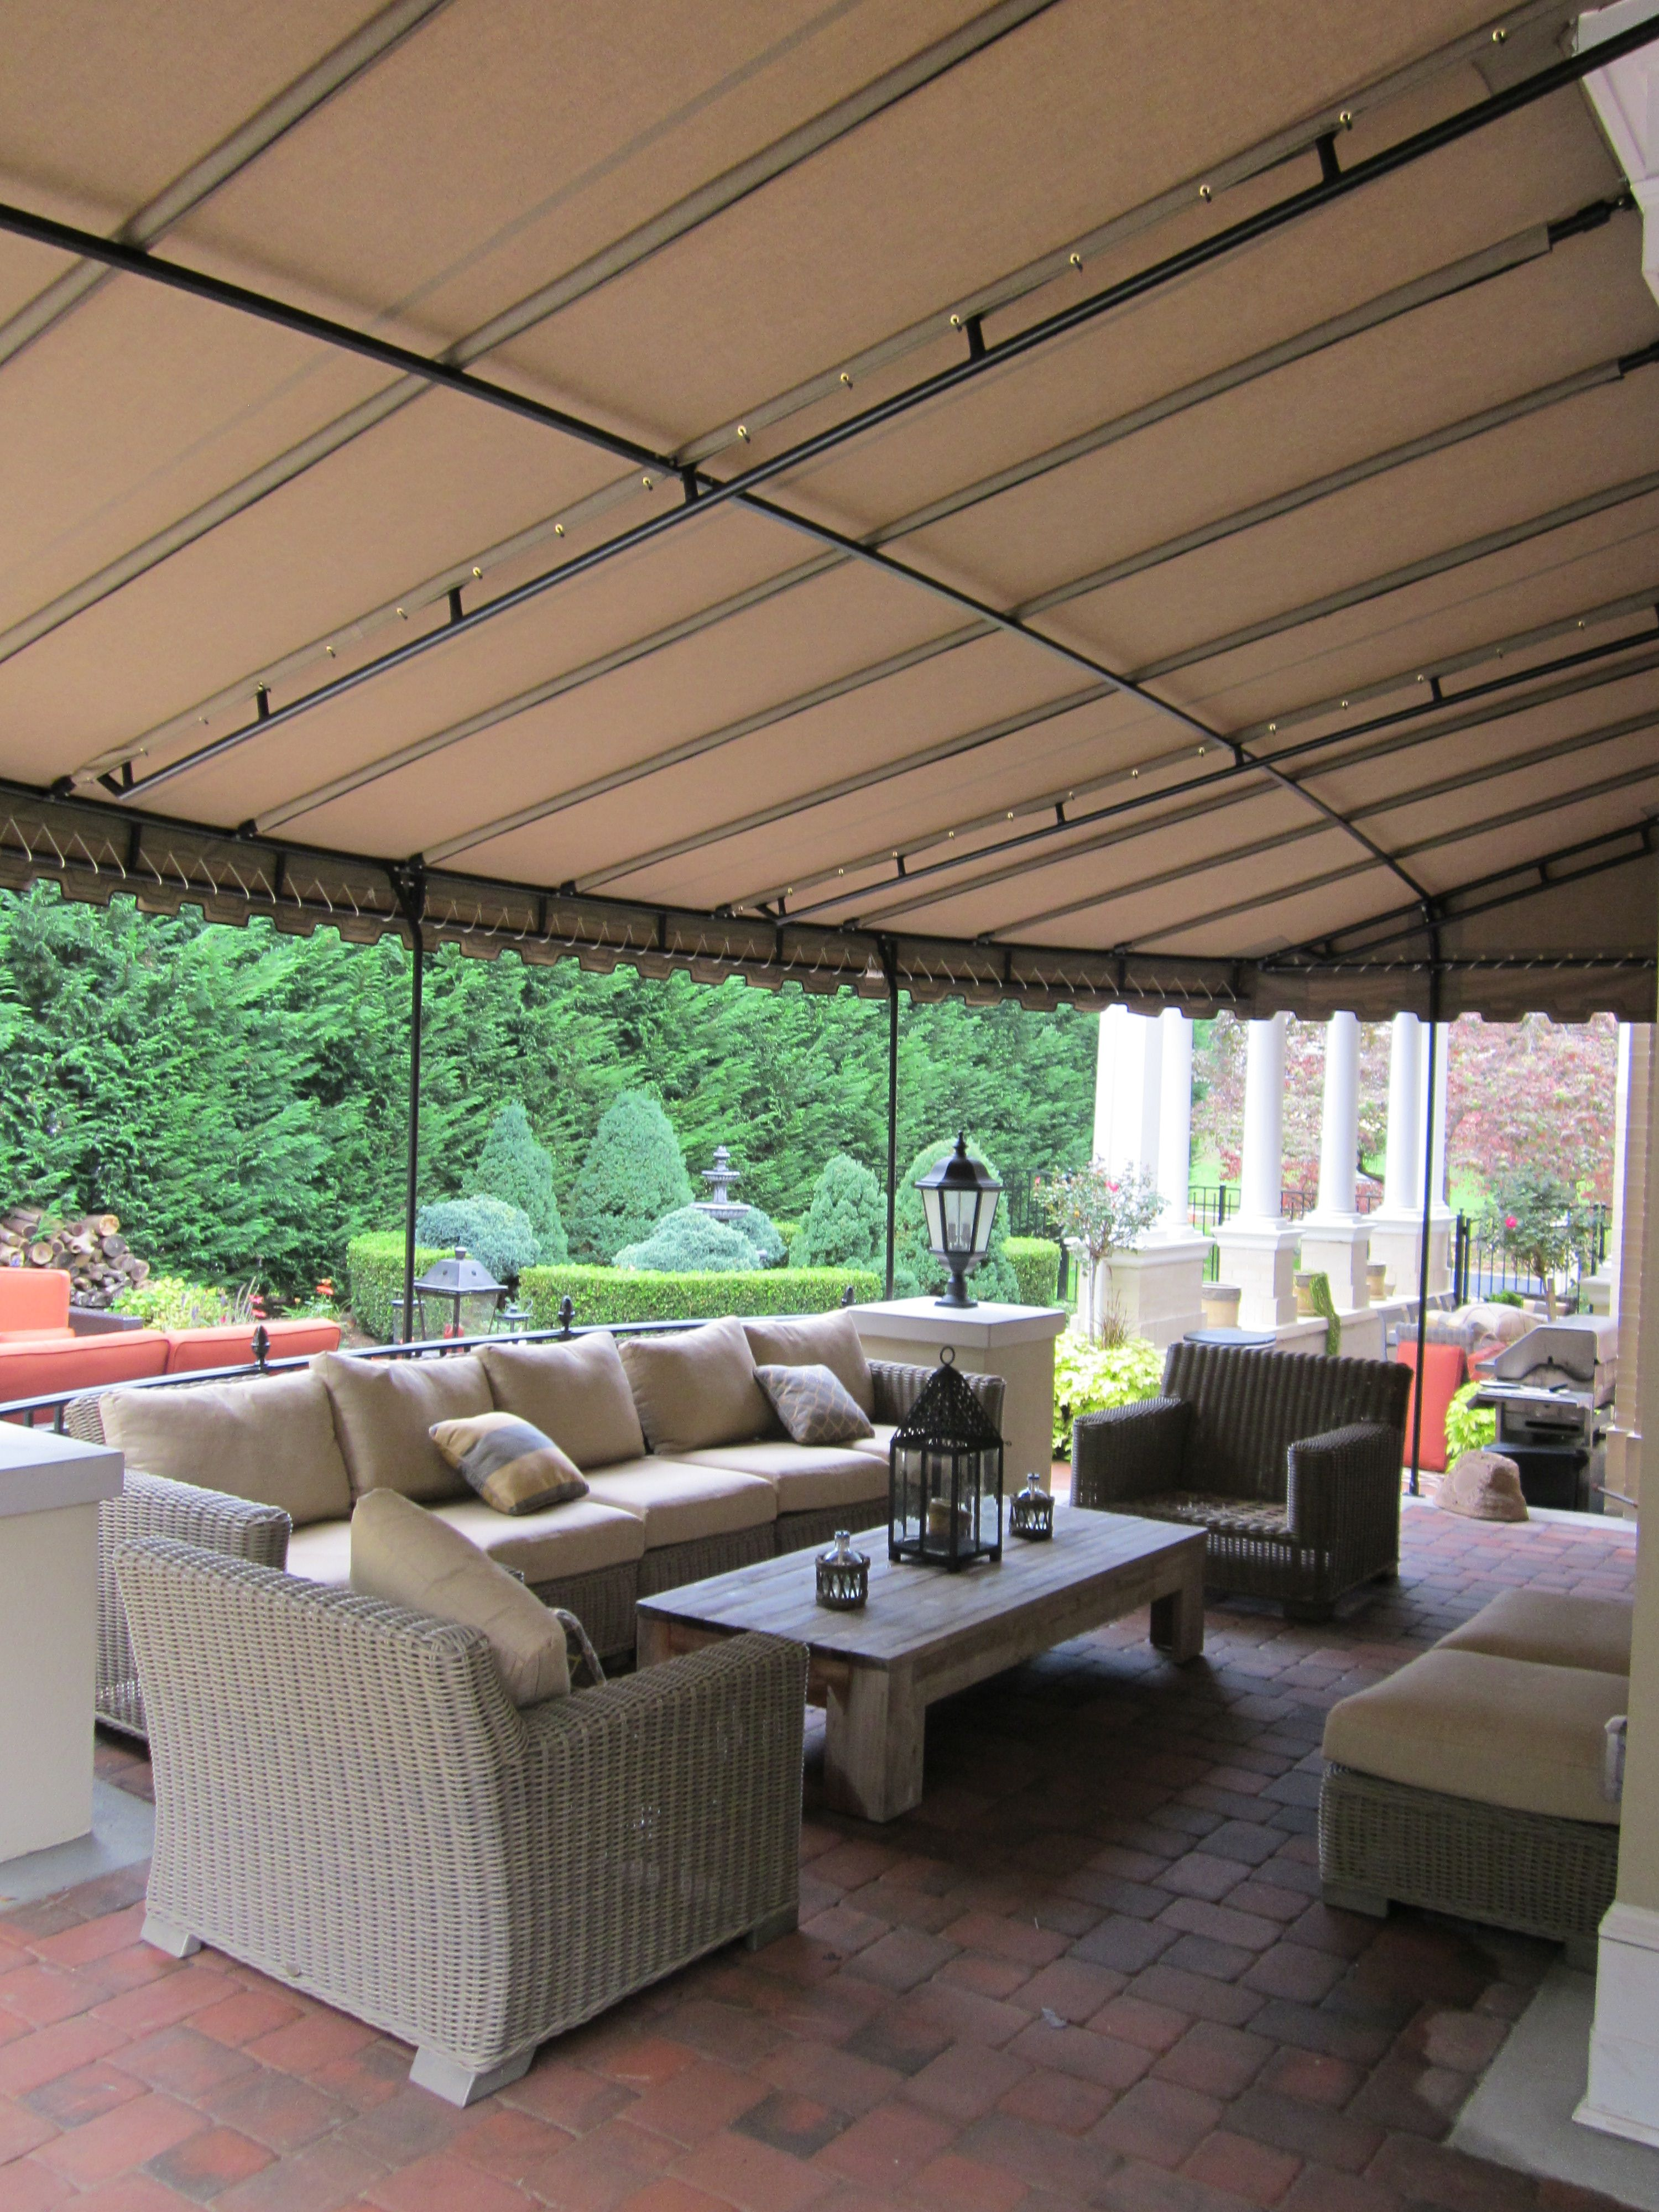 blahblahfire chrissmith awnings outdoor picture u from shade design decks wonderful stationary www com home magic aluminum appealing for awning deck